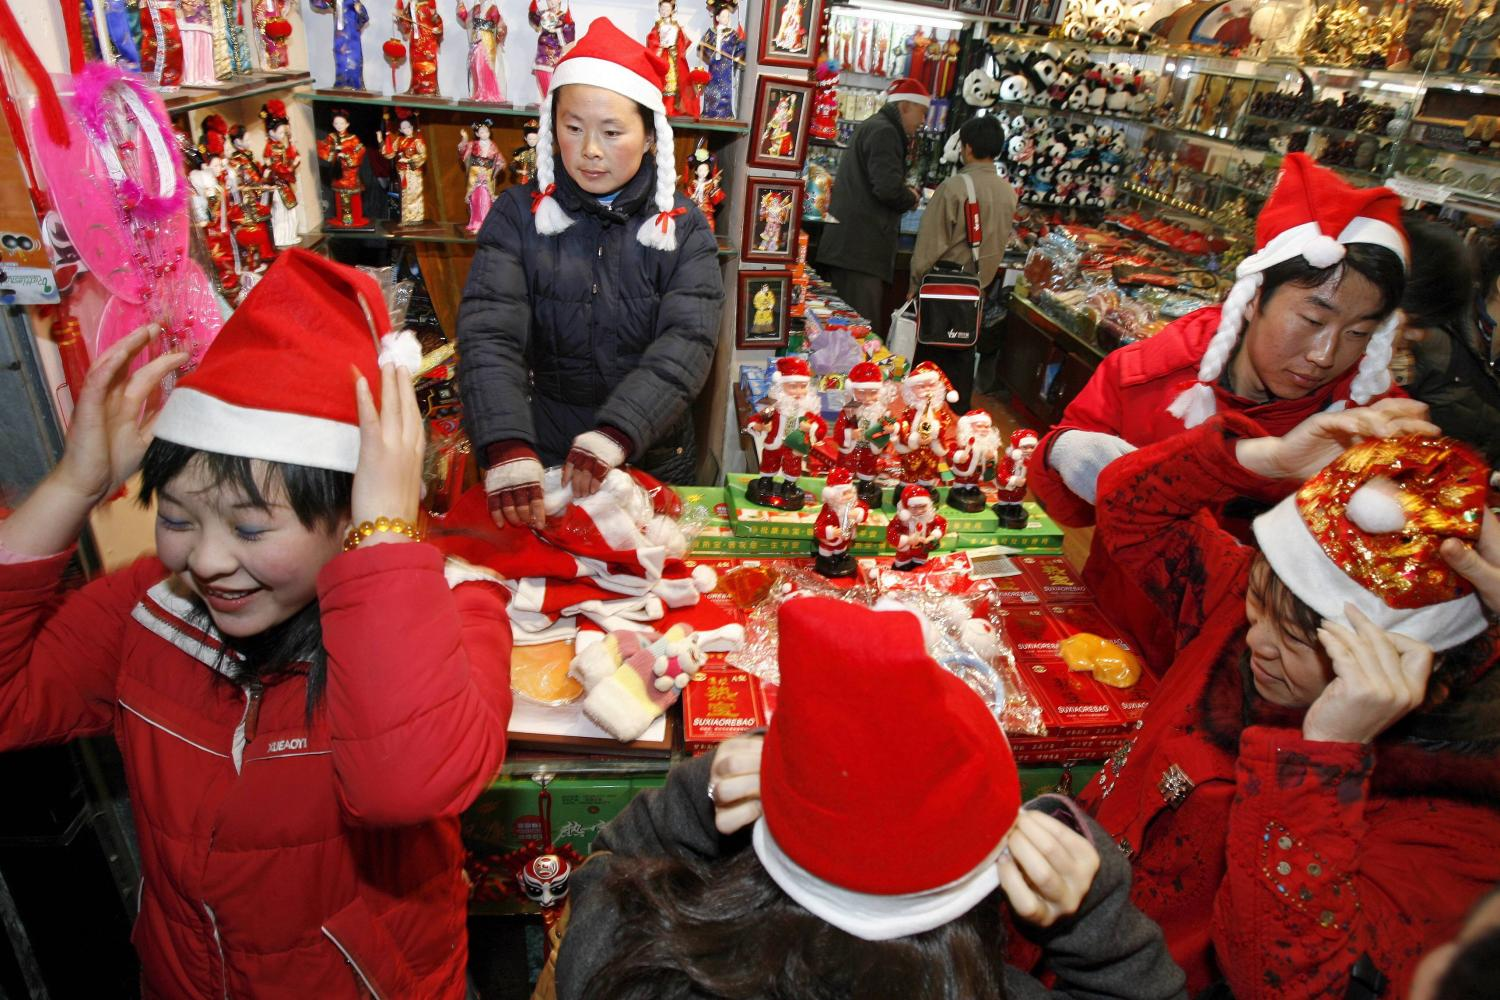 Chinese Christmas.How Christmas Is Celebrated In Communist China Metallicman